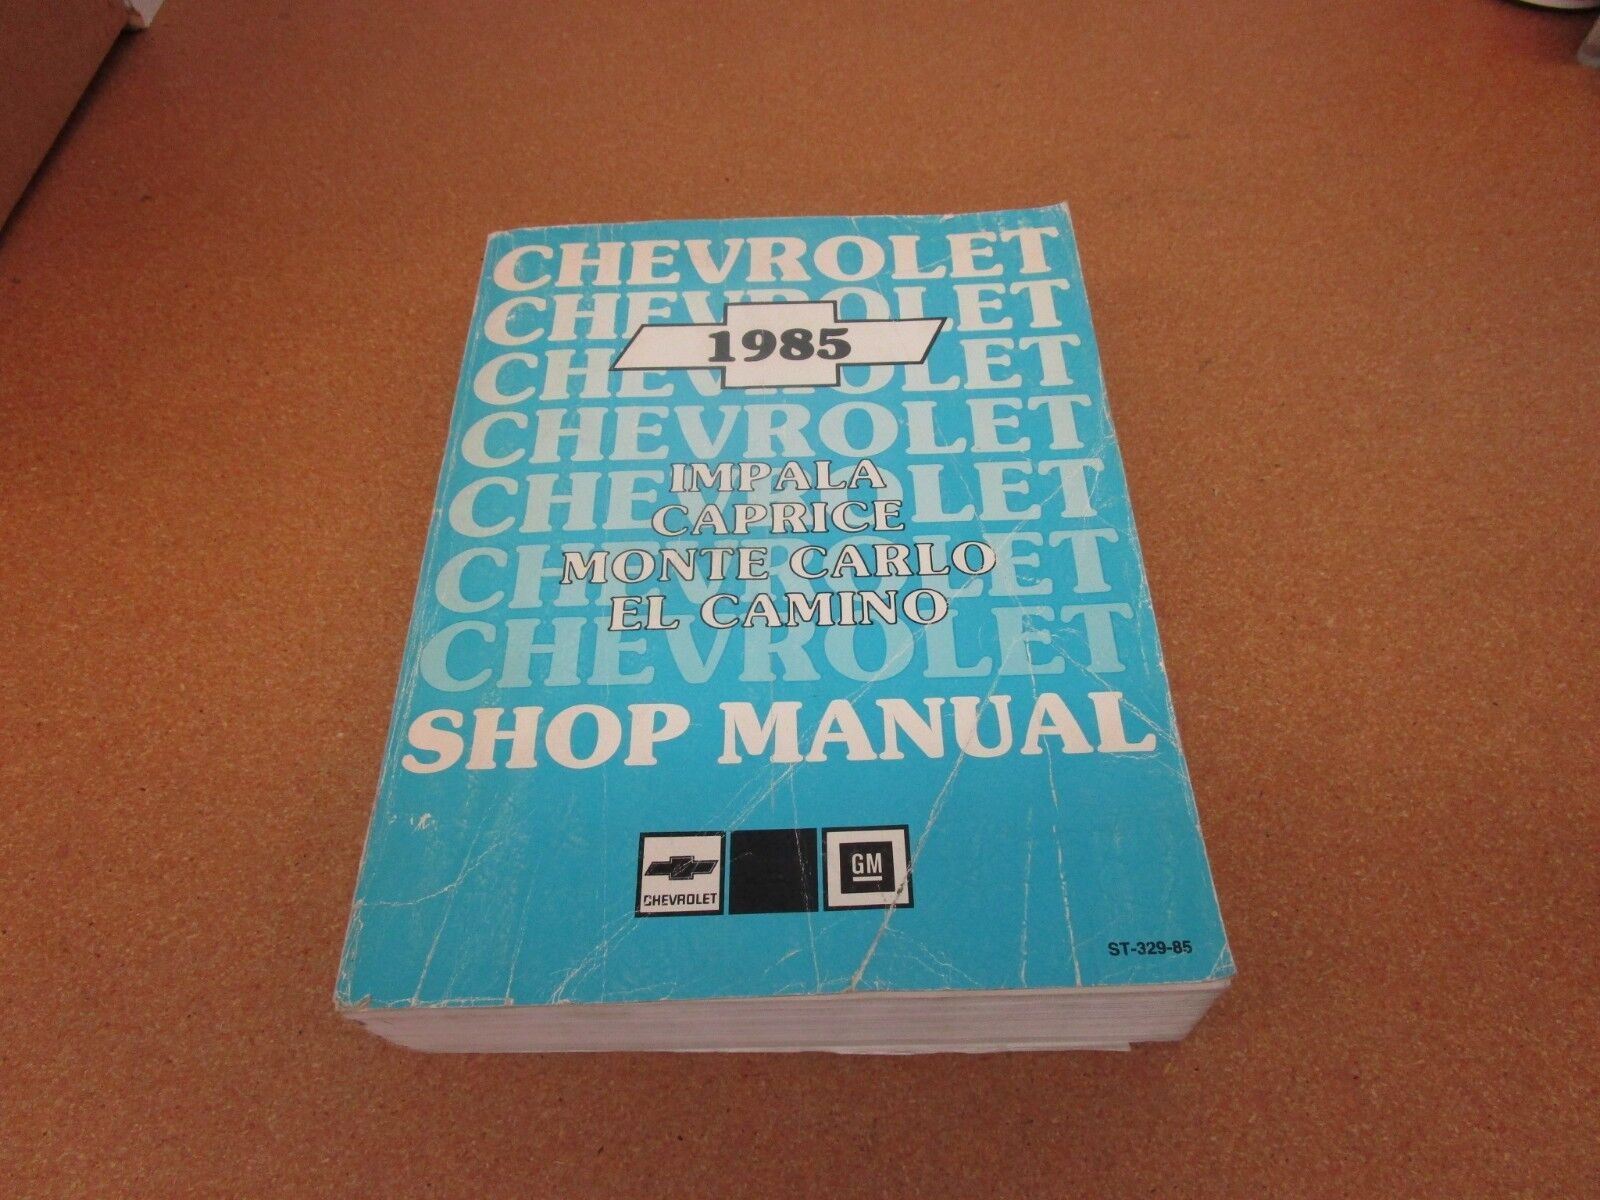 repair manual for 2001 chevy silverado 2500hd